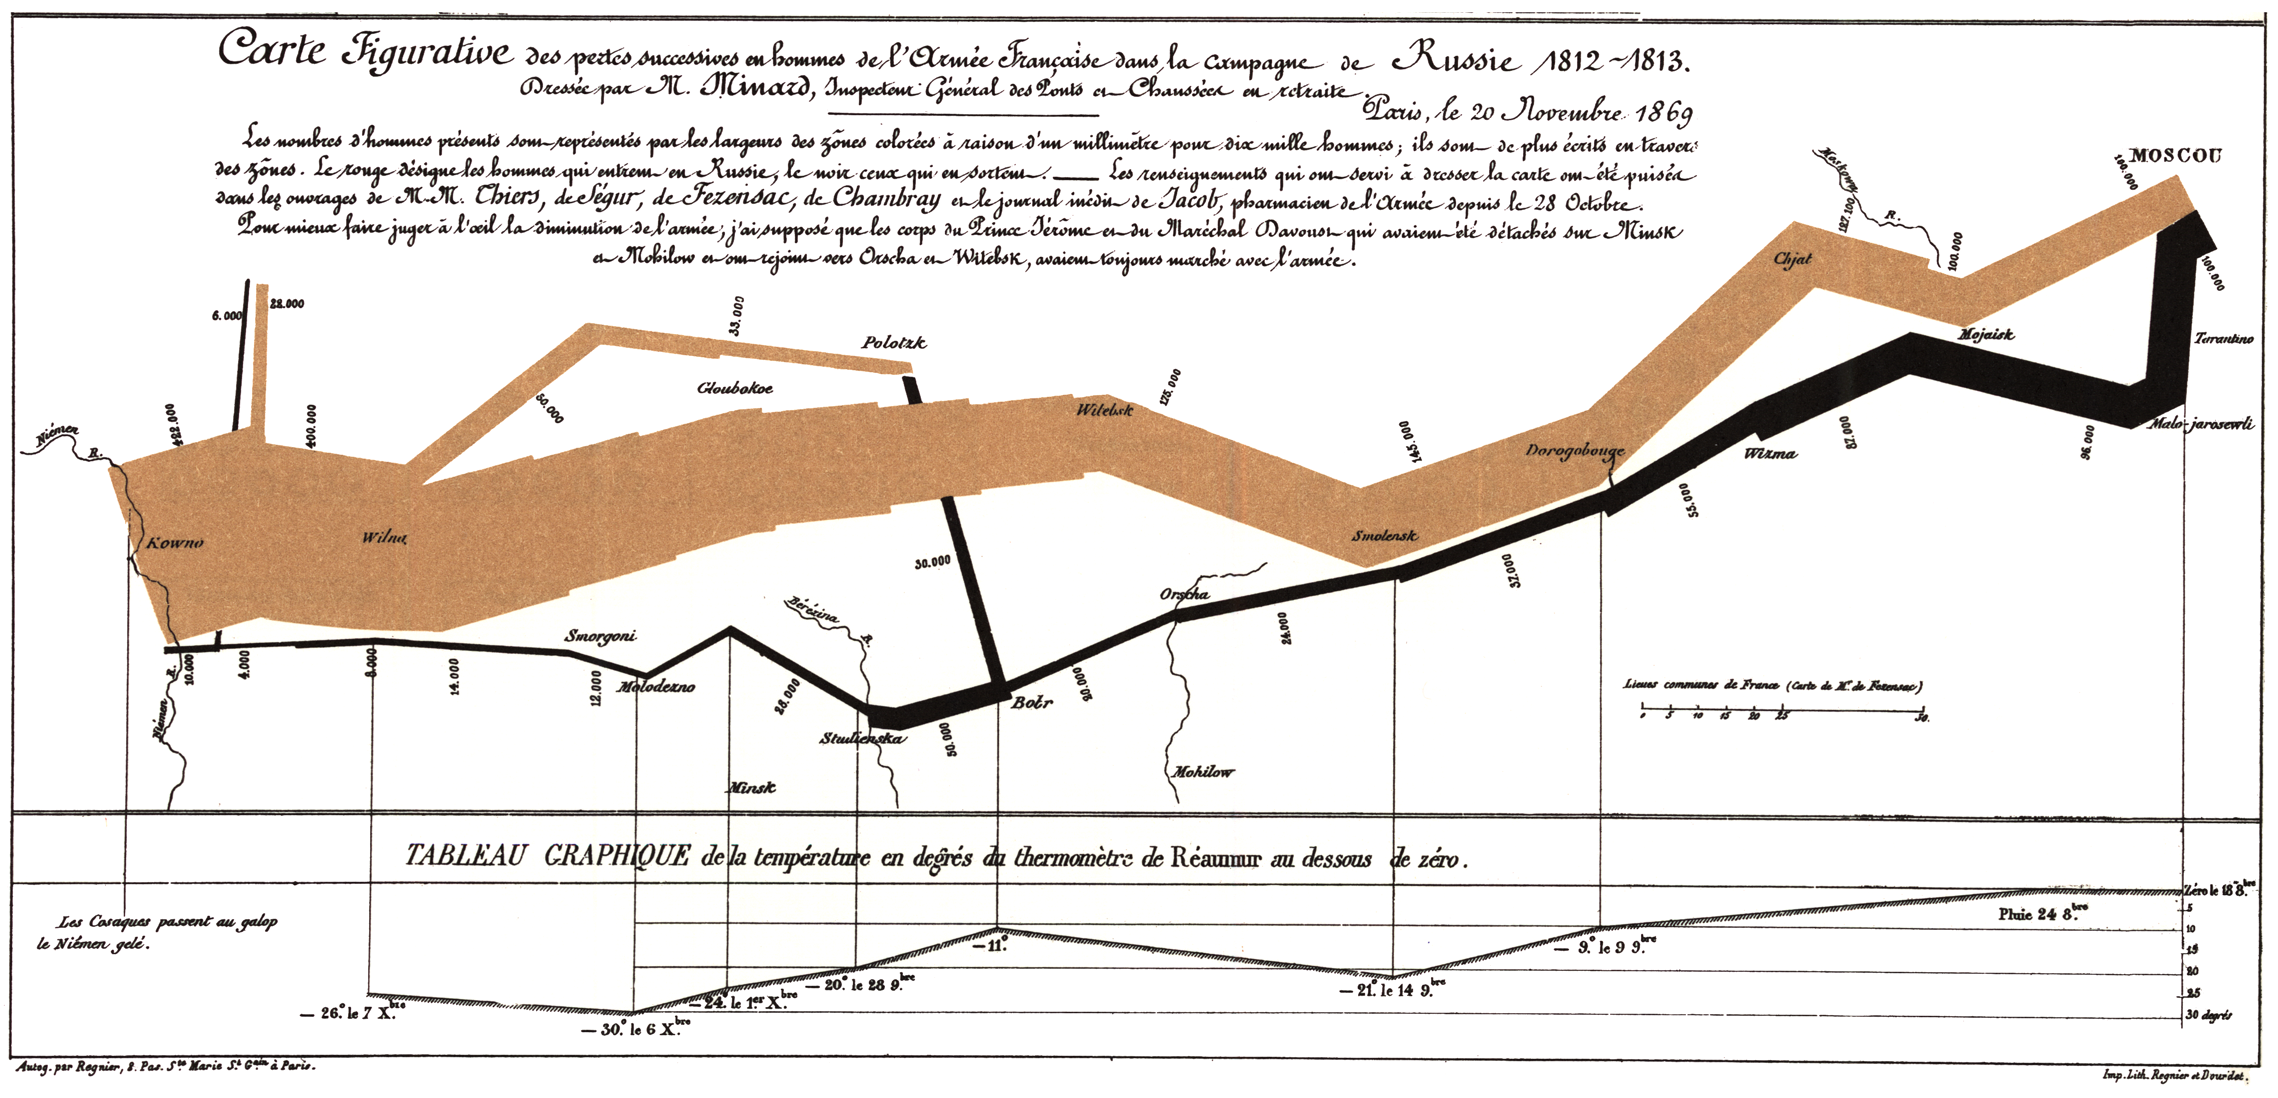 Figurative Map of the successive losses in men of the French Army in the Russian campaign 1812–1813. Drawn by M. Minard, Inspector General of Bridges and Roads (retired). Paris, November 20, 1869. The numbers of men present are represented by the widths of the colored zones at a rate of one millimeter for every ten thousand men; they are further written across the zones. The red designates the men who enter Russia, the black those who leave it. — The information which has served to draw up the map has been extracted from the works of M. M. Thiers, de Ségur, de Fezensac, de Chambray and the unpublished diary of Jacob, the pharmacist of the Army since October 28th. In order to better judge with the eye the diminution of the army, I have assumed that the troops of Prince Jérôme and of Marshal Davout, who had been detached at Minsk and Mogilev and have rejoined near Orsha and Vitebsk, had always marched with the army.